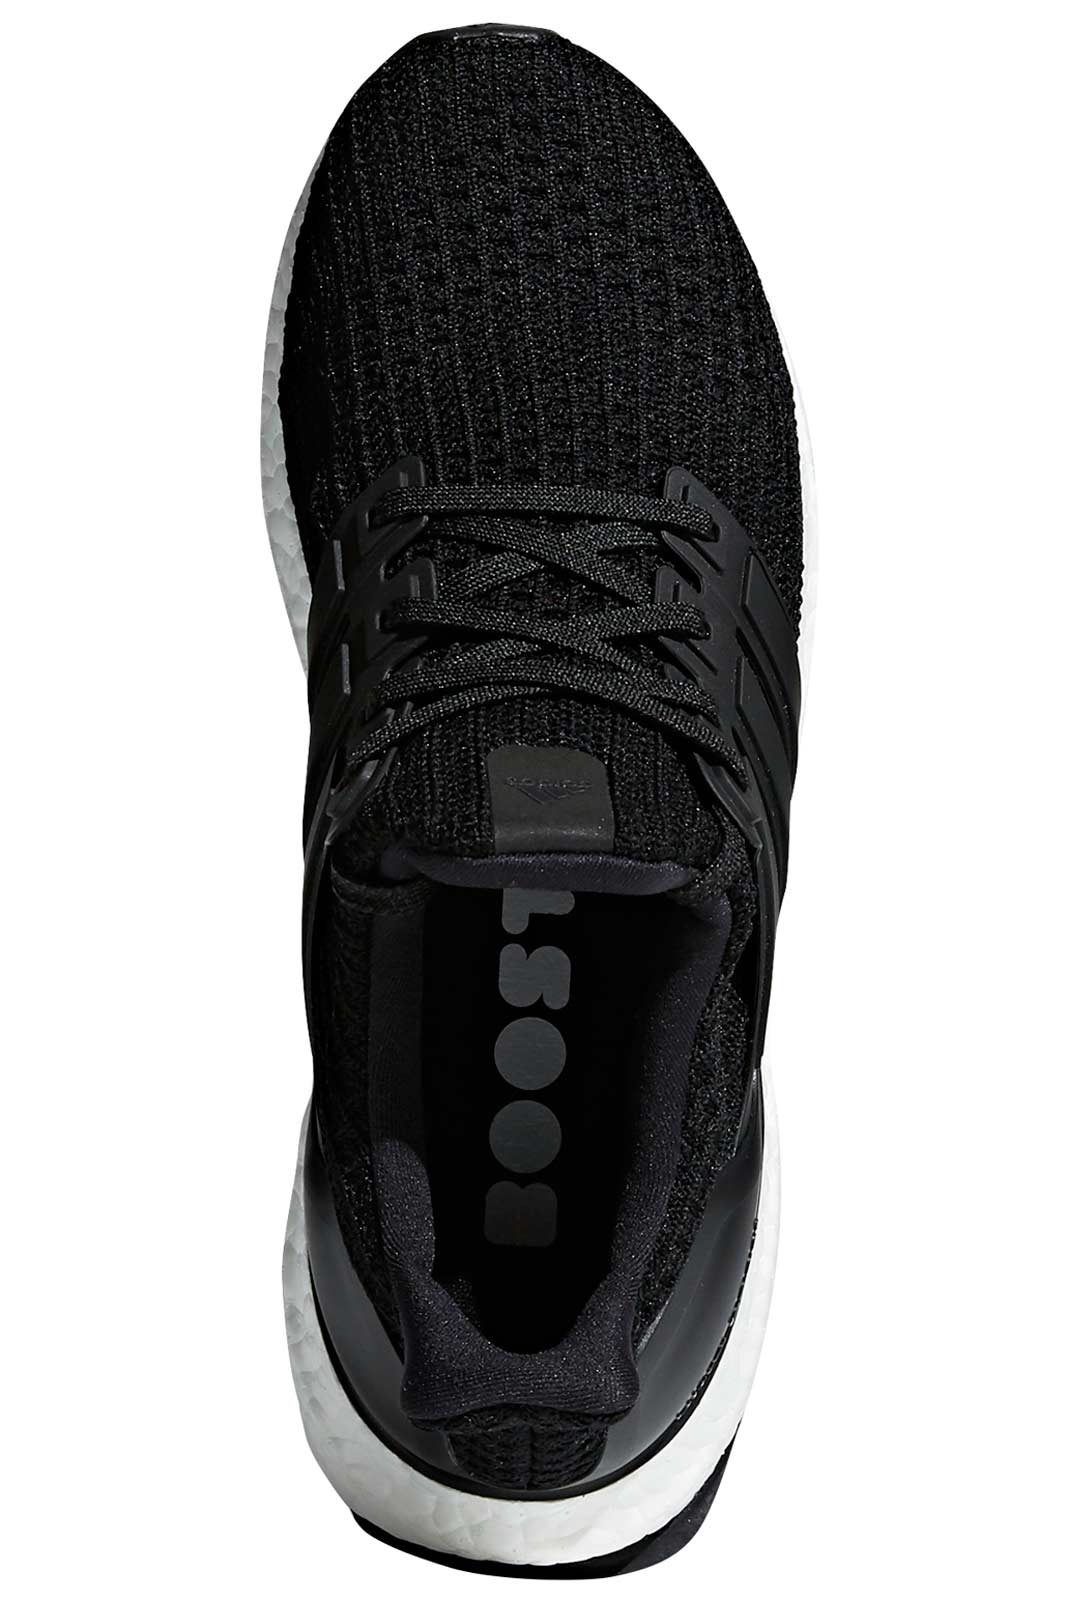 ADIDAS Ultra Boost 4.0 - Core Black - Women's image 3 - The Sports Edit